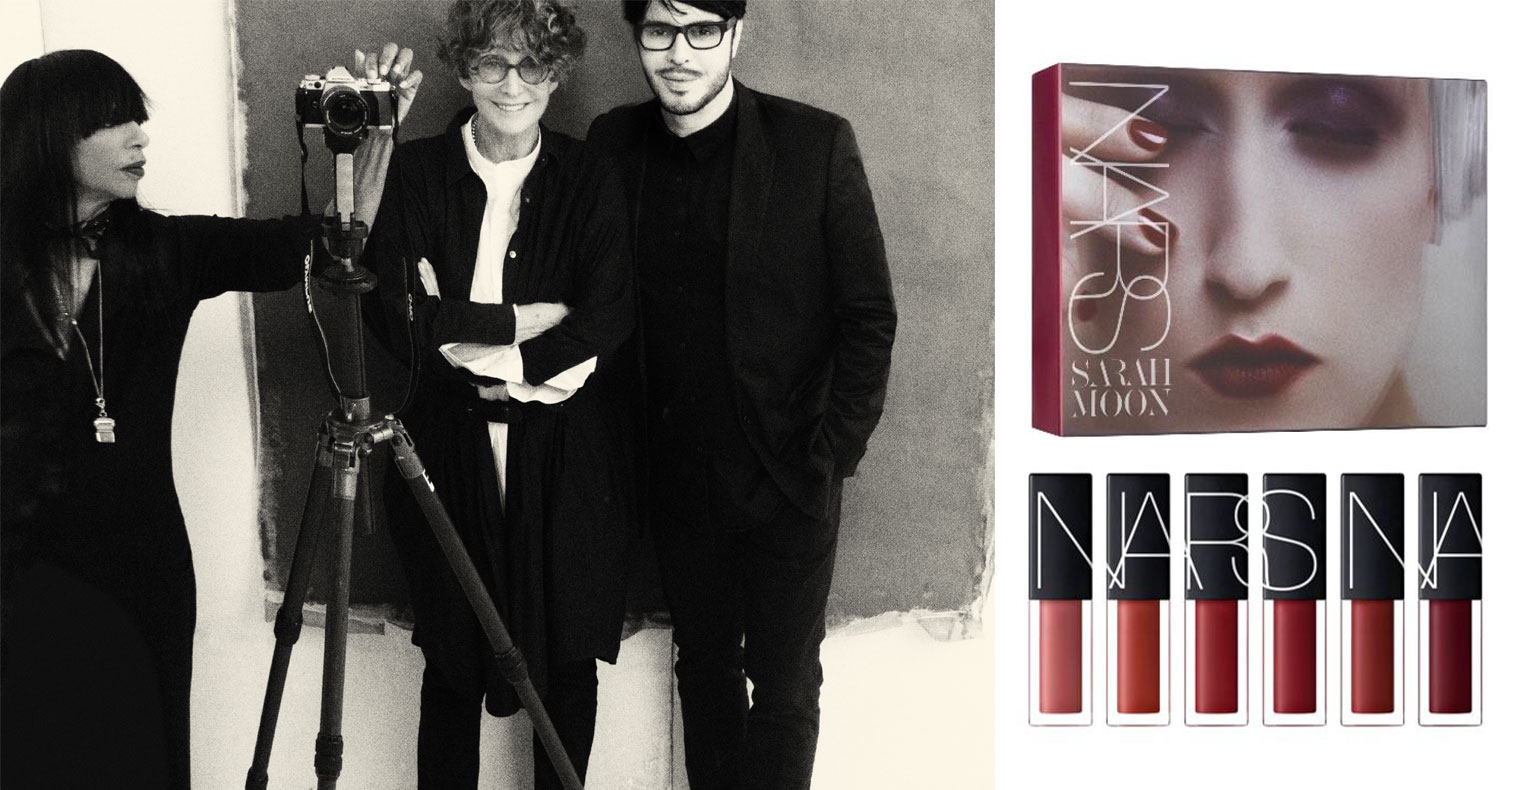 The collaboration of the week, Sarah Moon x Nars